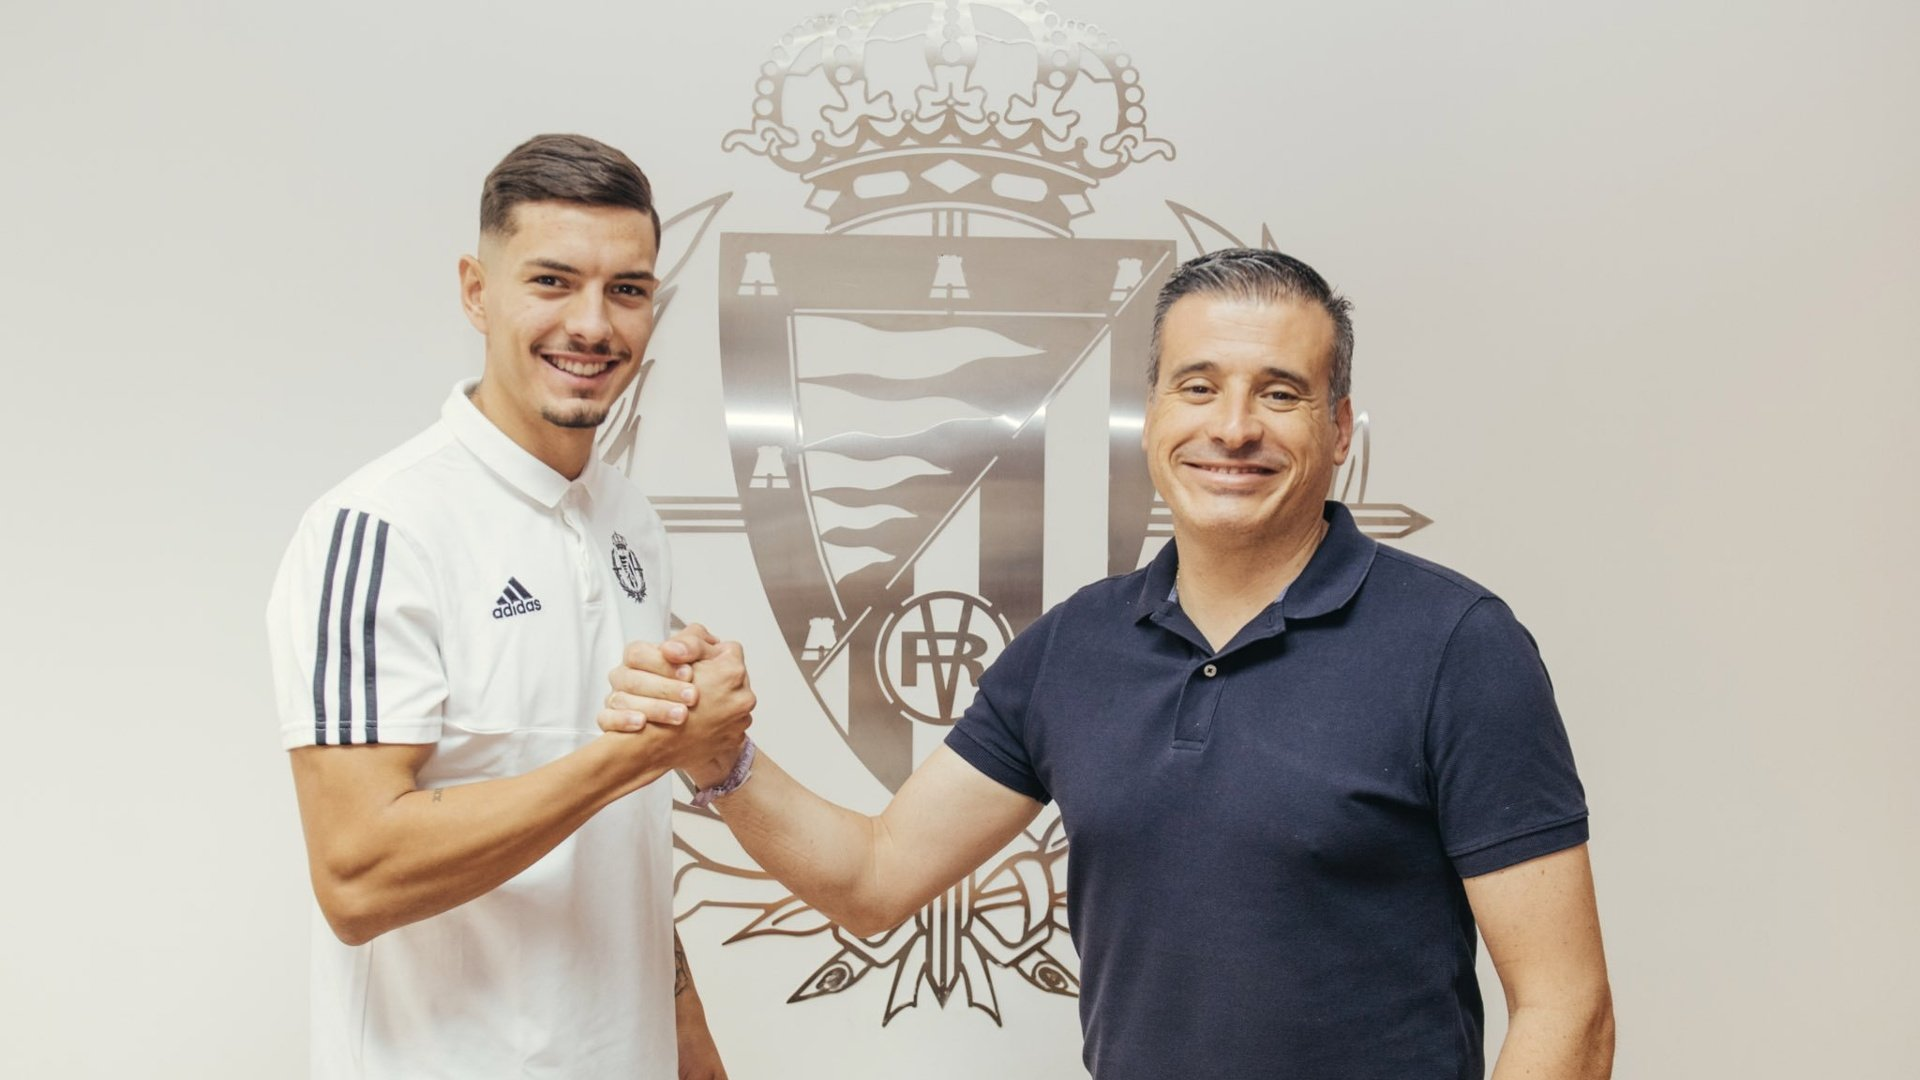 OFFICIAL: Javi Sánchez moves on loan to Valladolid